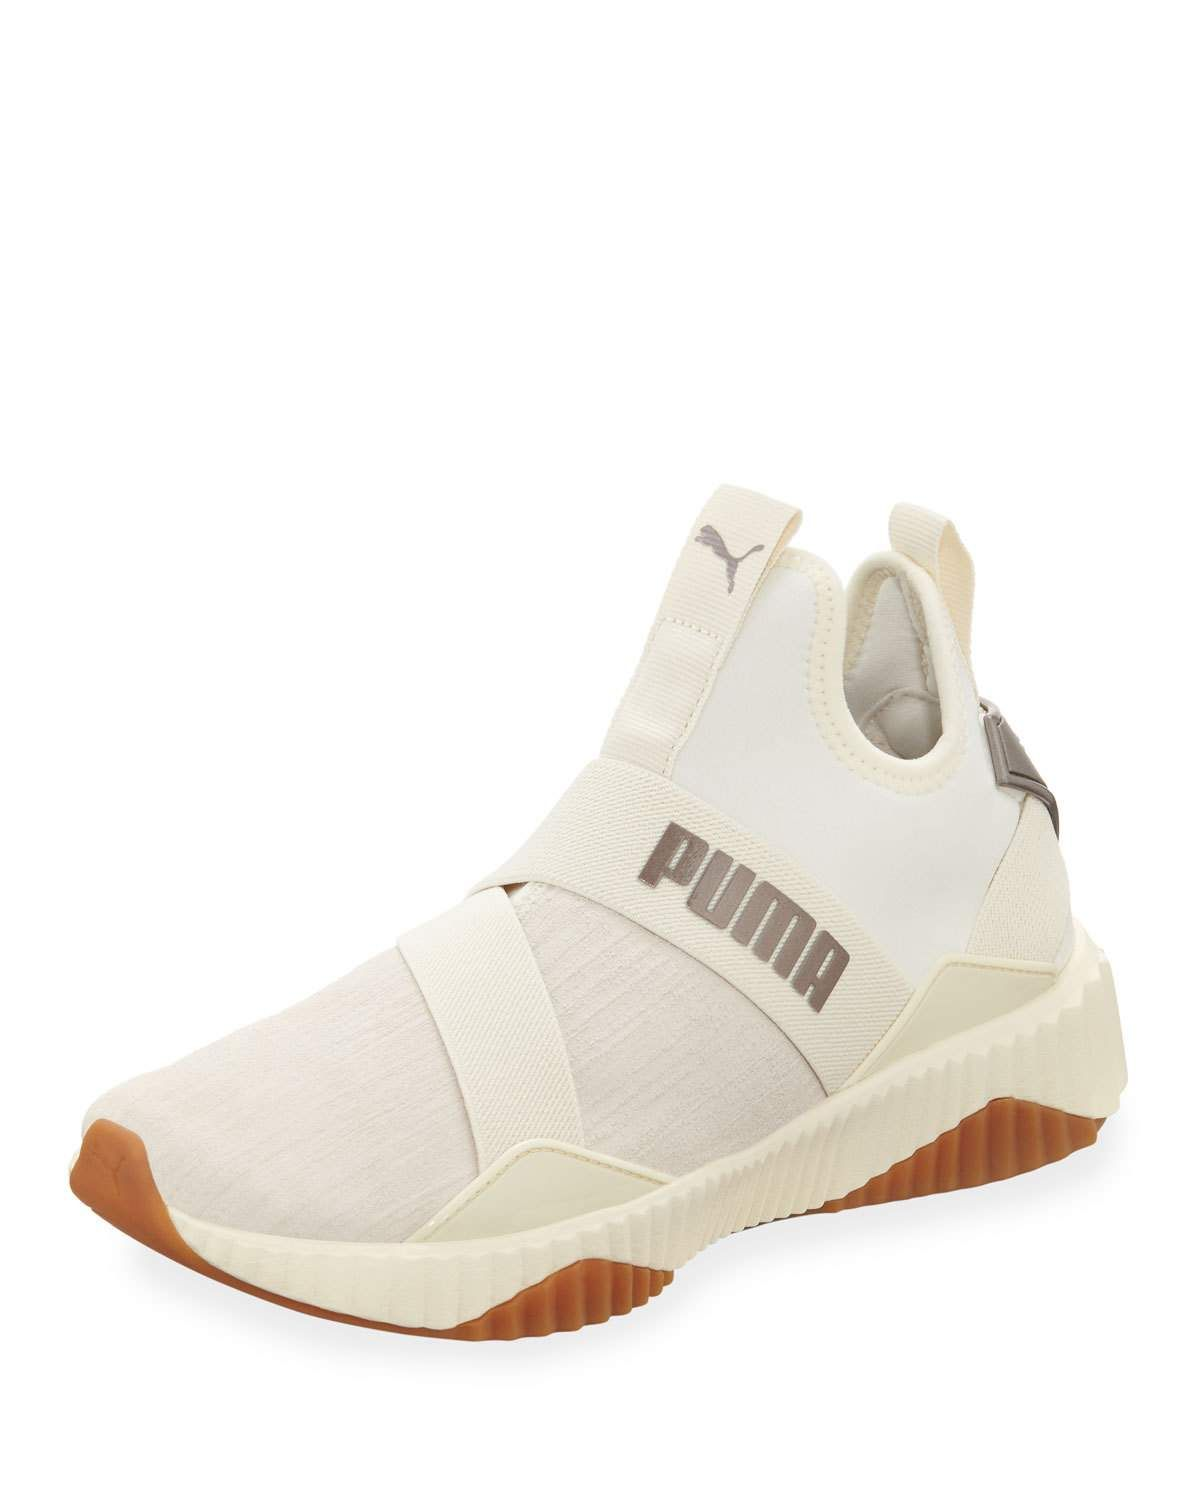 Puma Defy Mid Luxe Chunky Sneakers